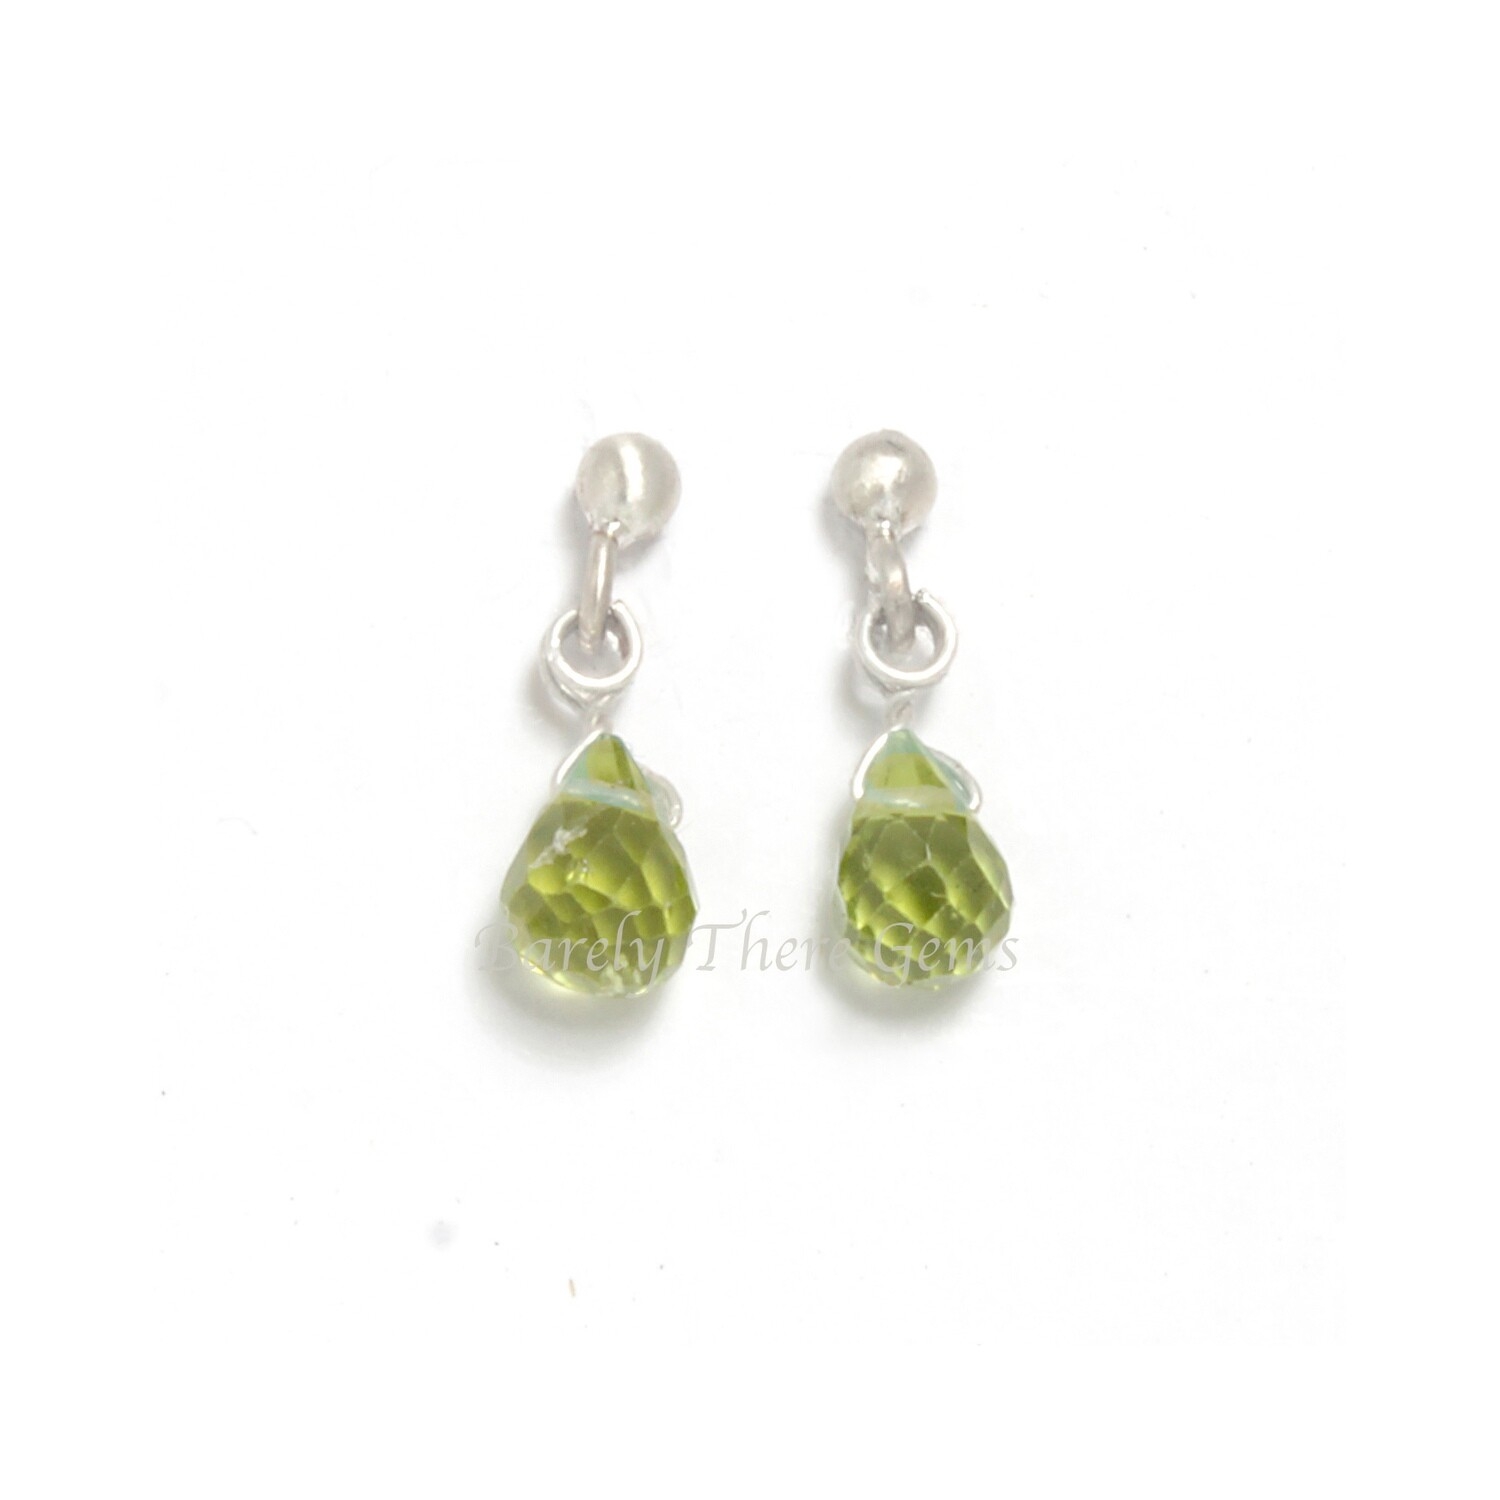 Peridot, Sterling Silver, Stud Earrings